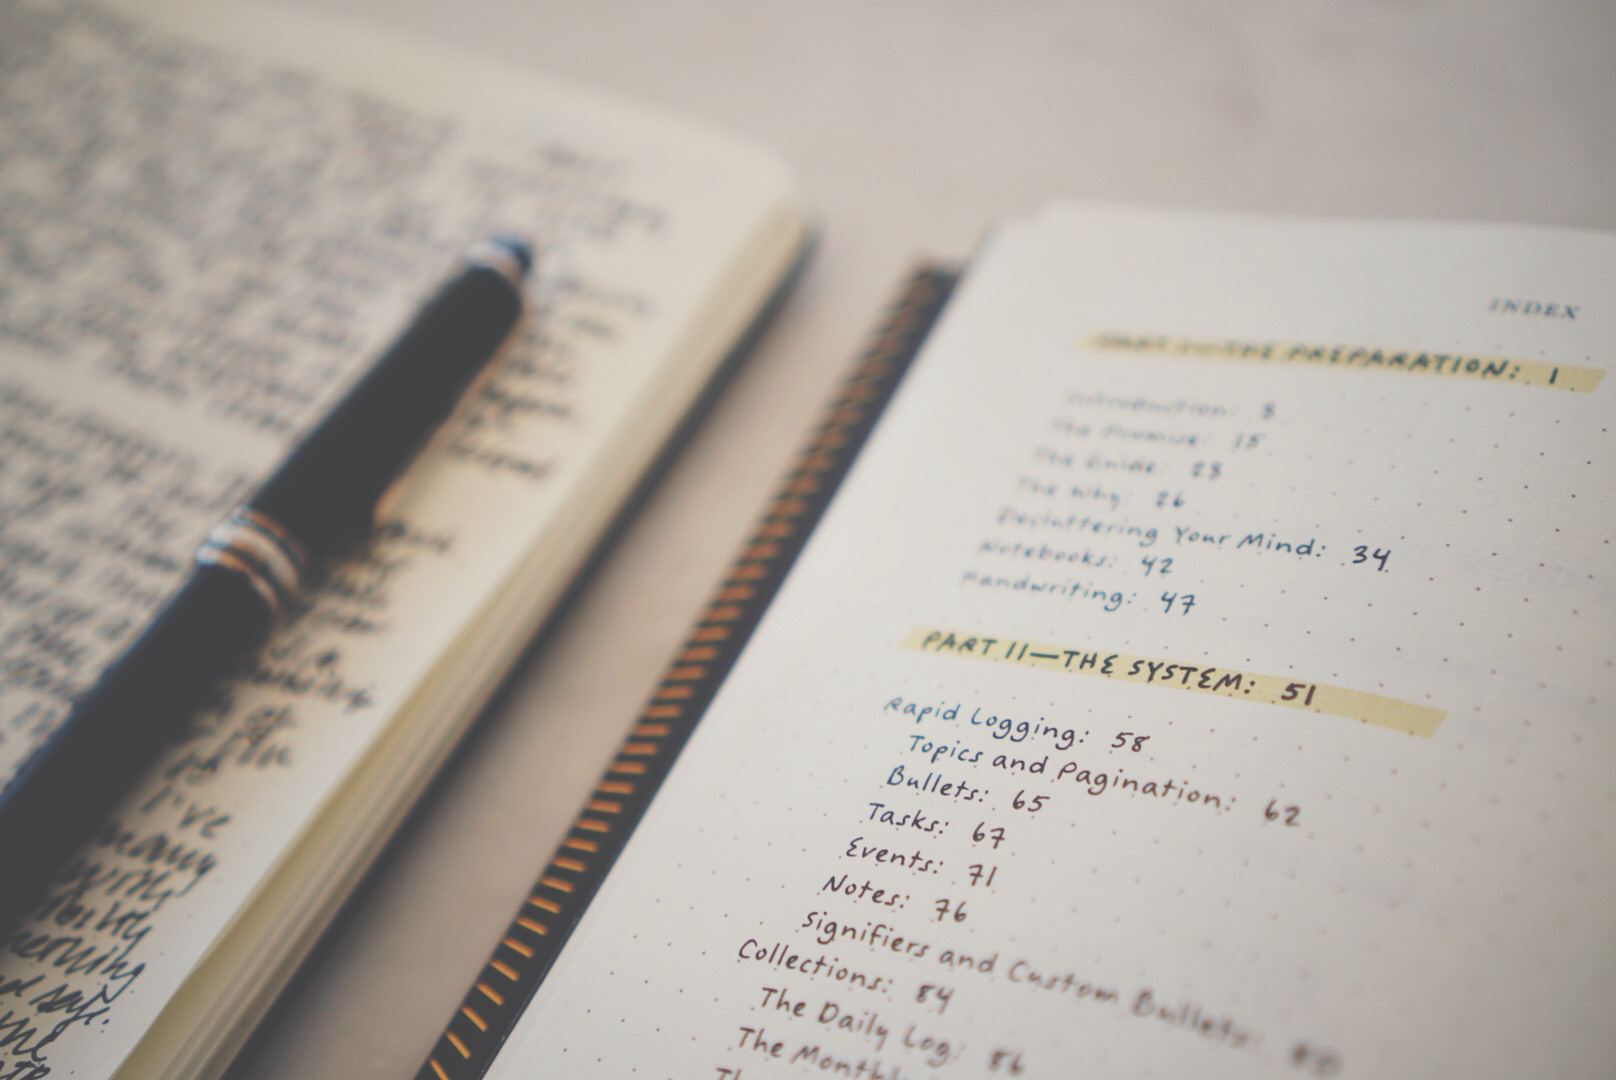 image of an open bullet journal next to an open copy of the Bullet Journal Method